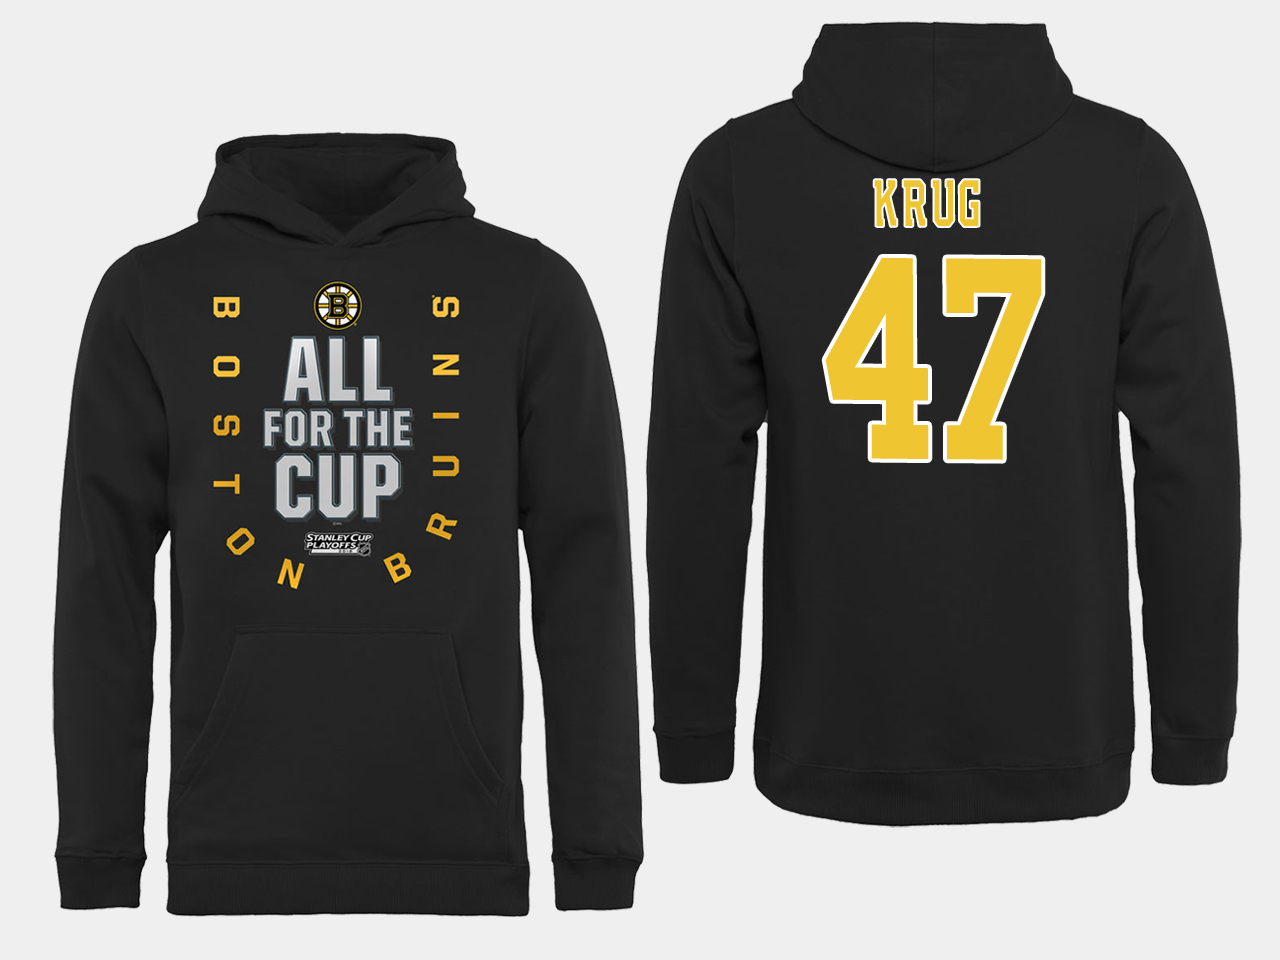 NHL Men Boston Bruins 47 Krug Black All for the Cup Hoodie